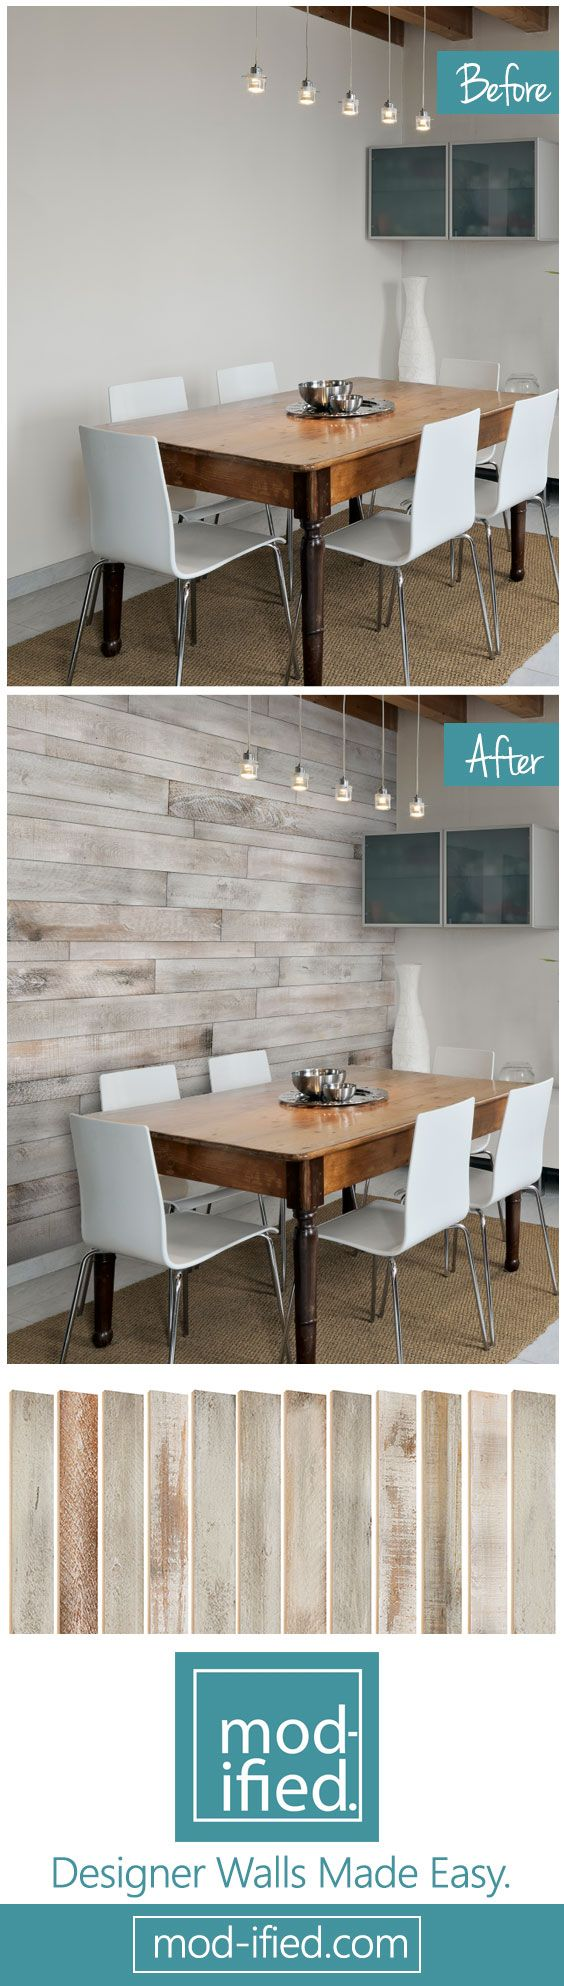 best 25+ wood walls ideas on pinterest | wood wall, diy wood wall